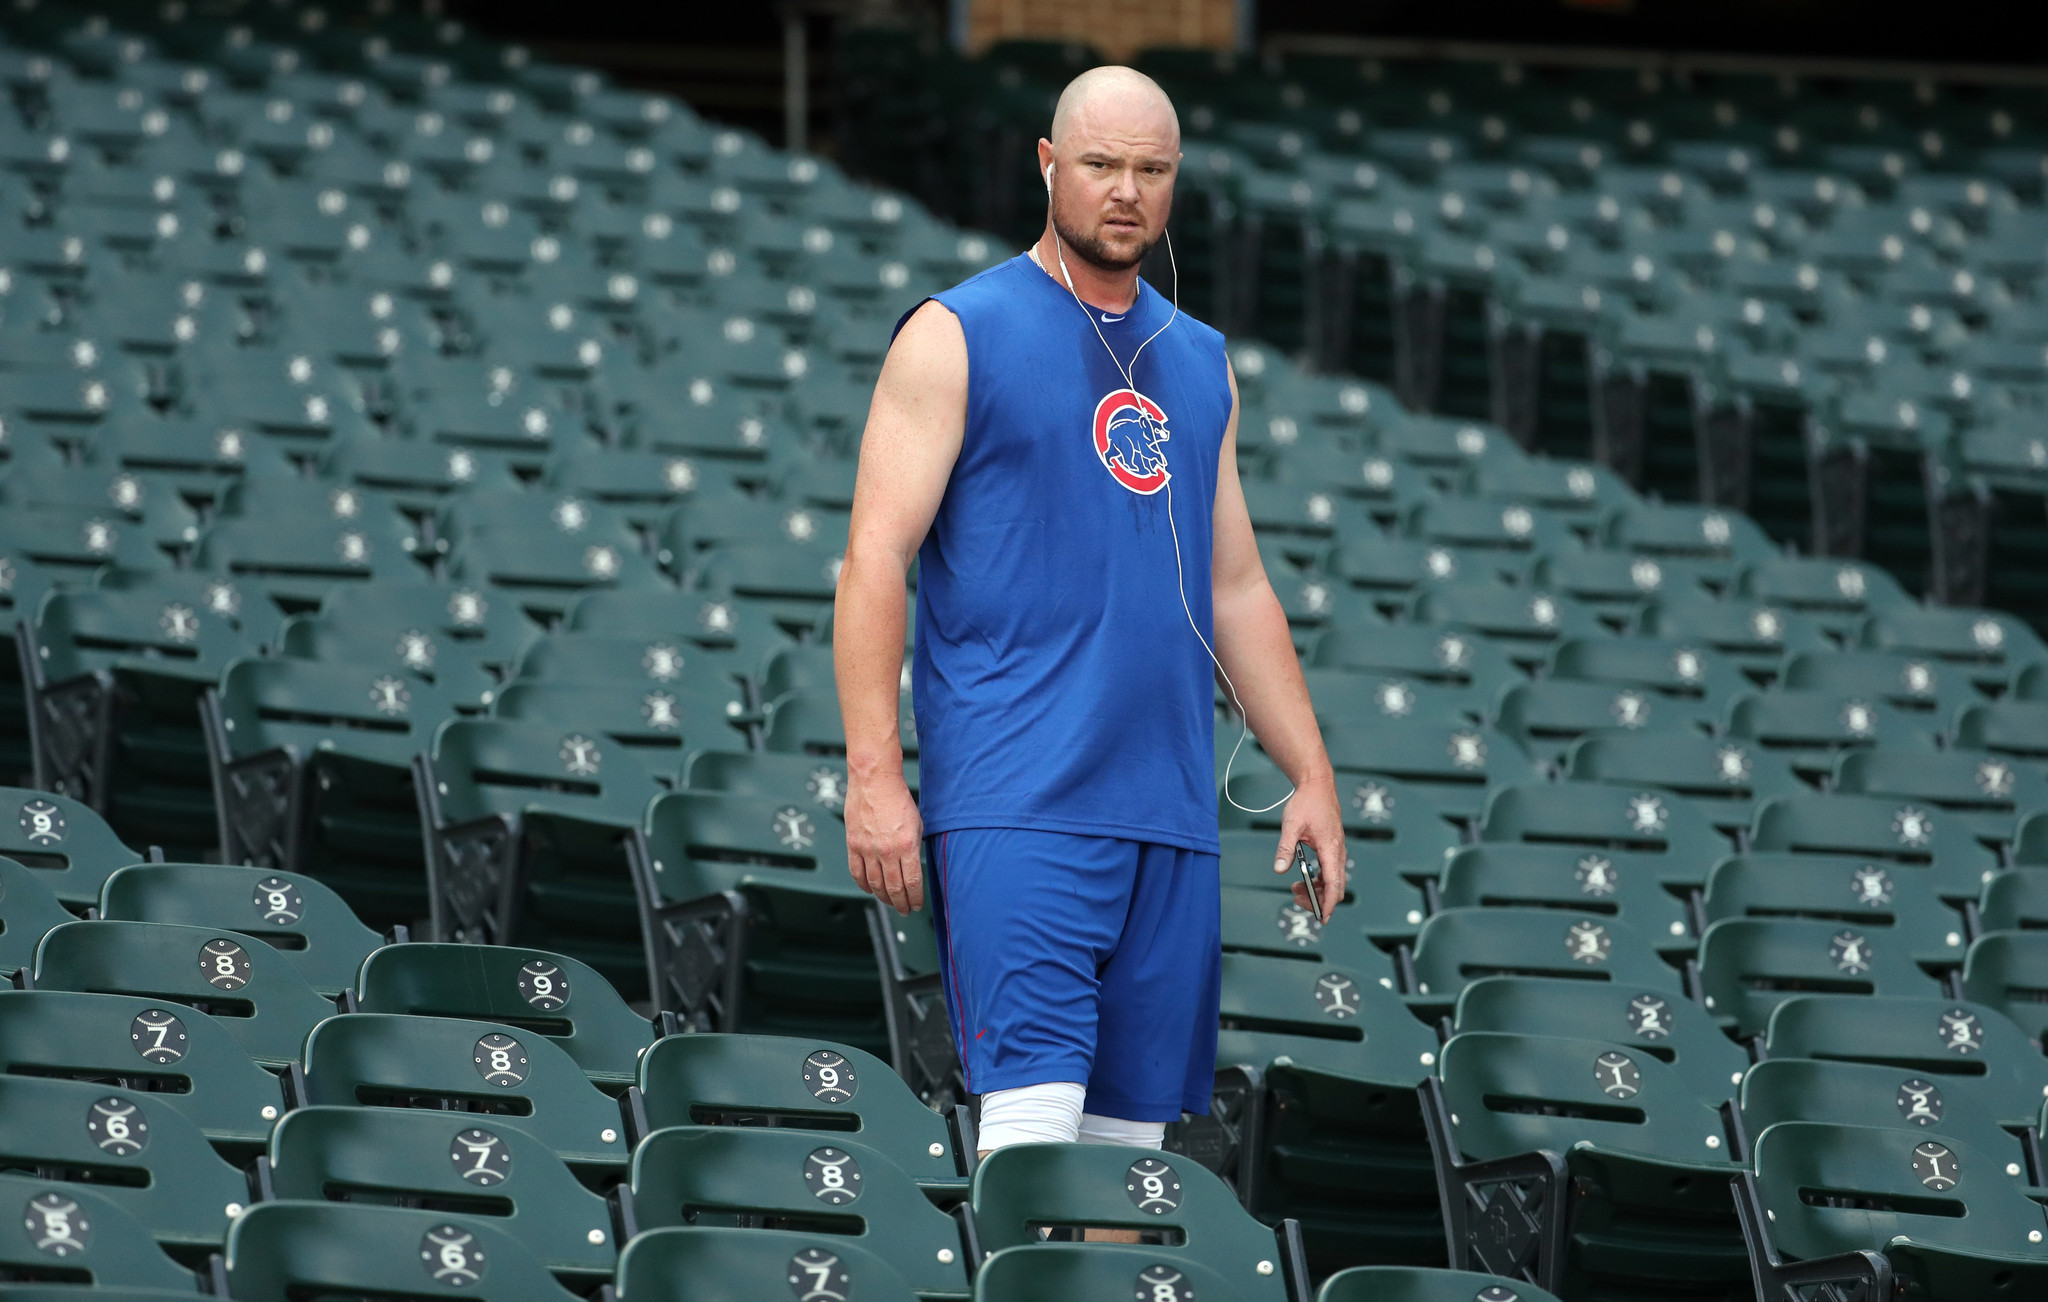 Ct-series-cubs-mariners-spt-0729-20160728